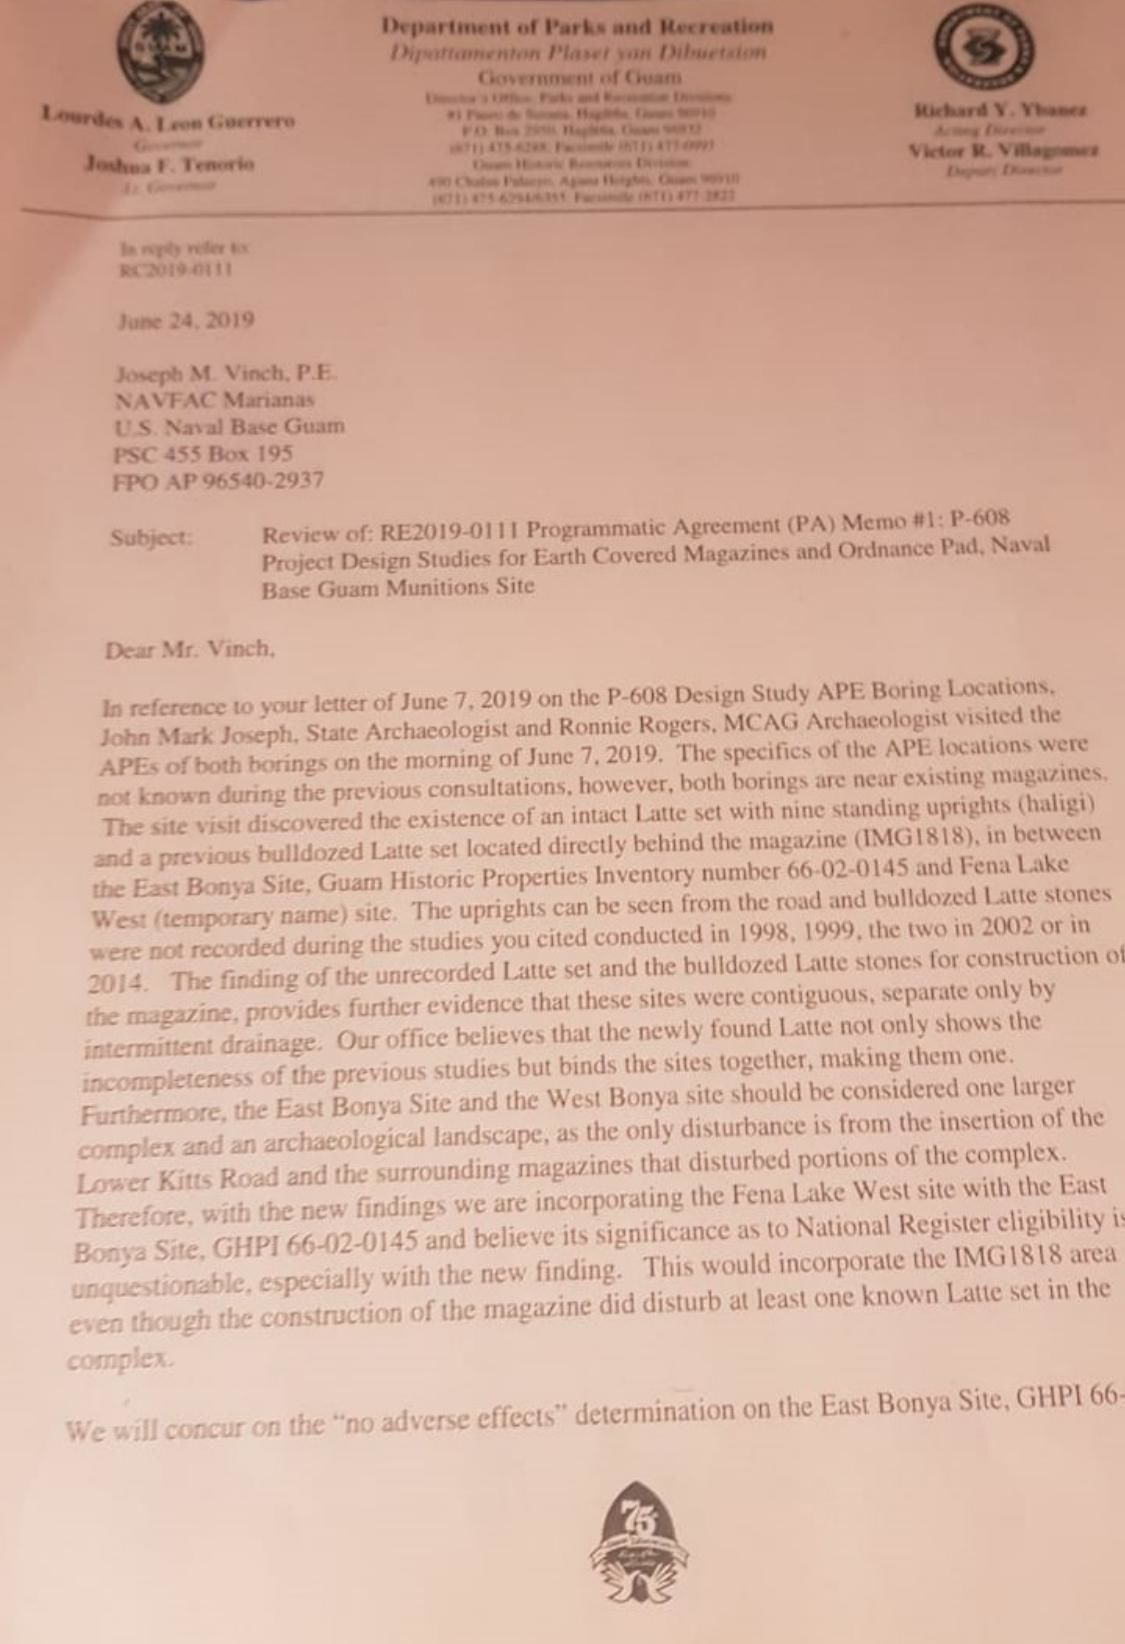 Ybanez letter to Vinch